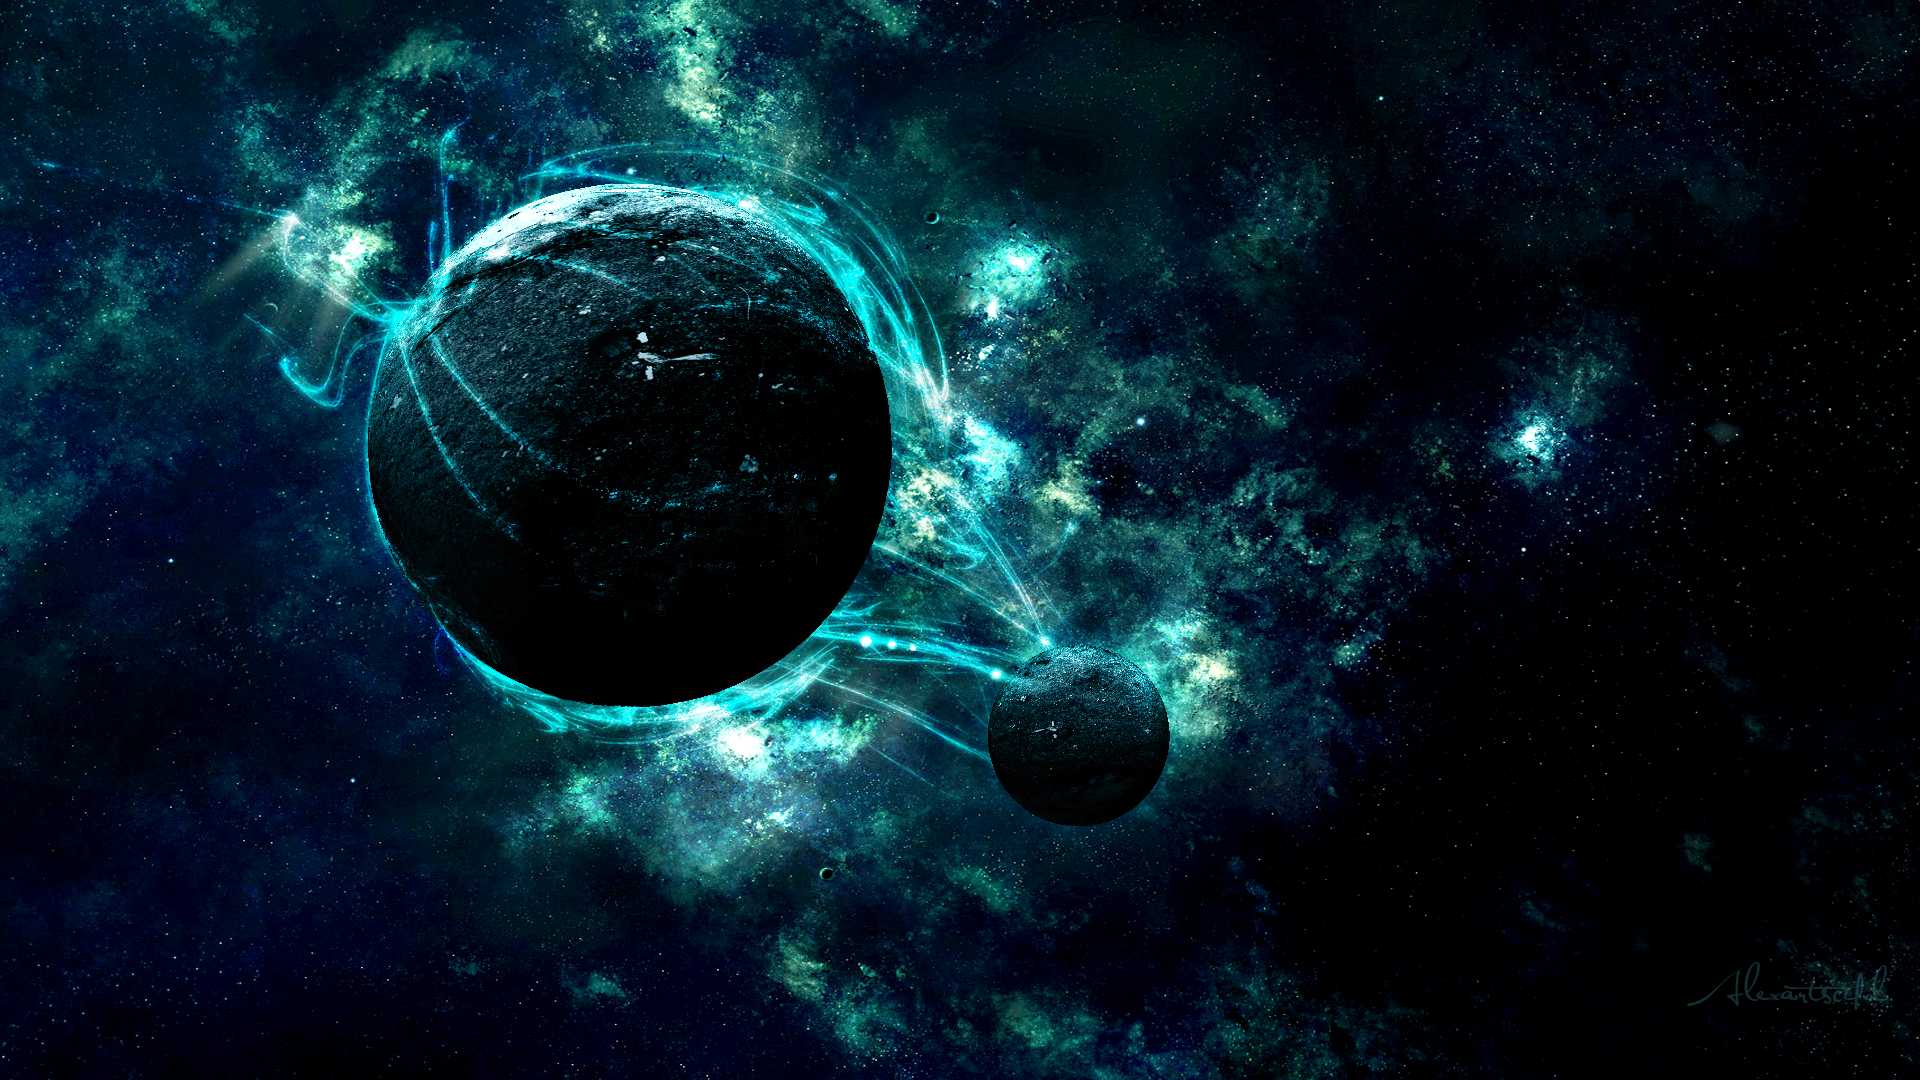 Cool Planet Wallpaper wallpaper wallpaper hd background desktop 1920x1080